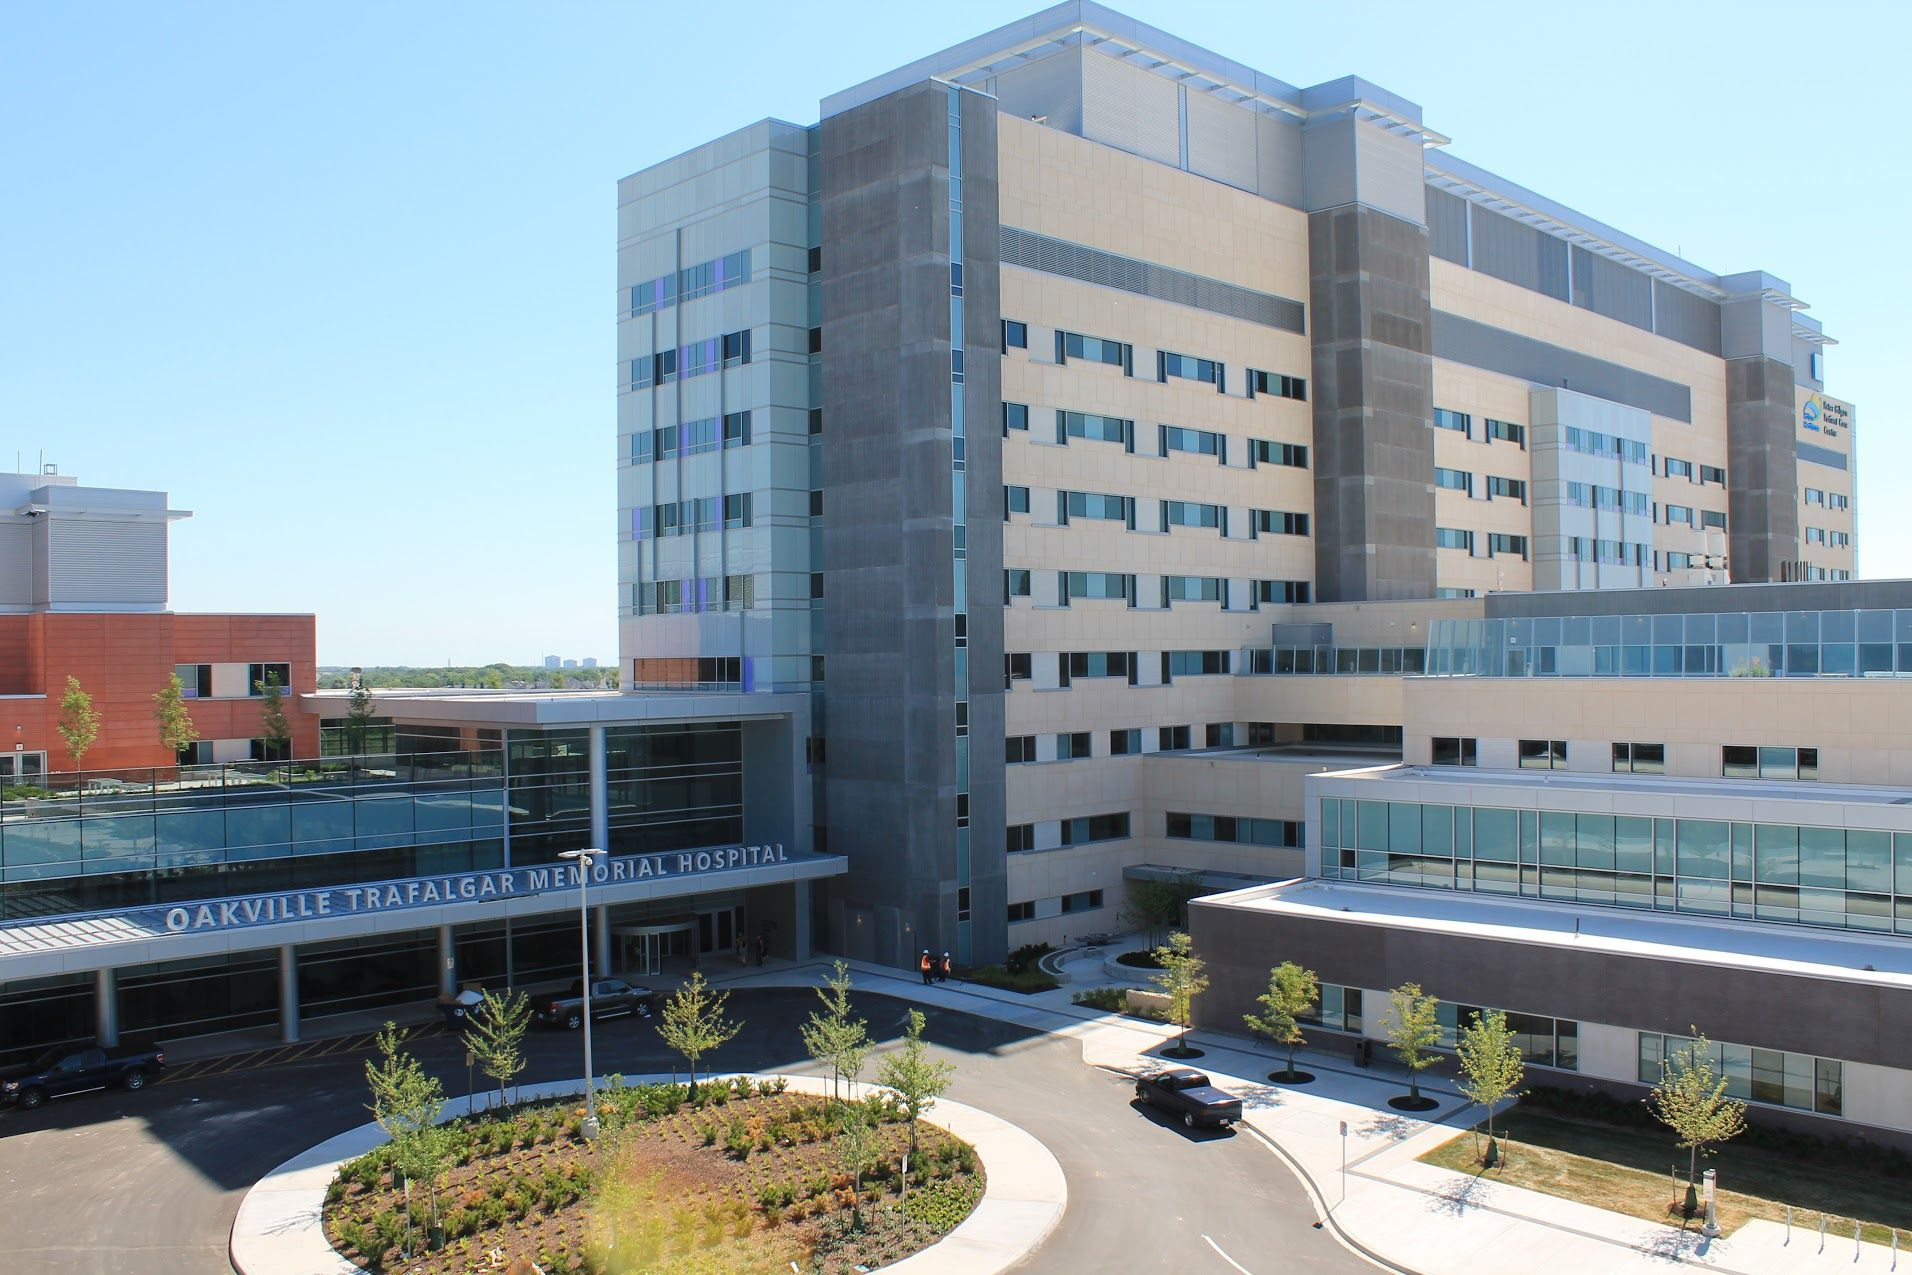 Aggregate producers contribute to the construction of Oakville's new $2.2-billion hospital